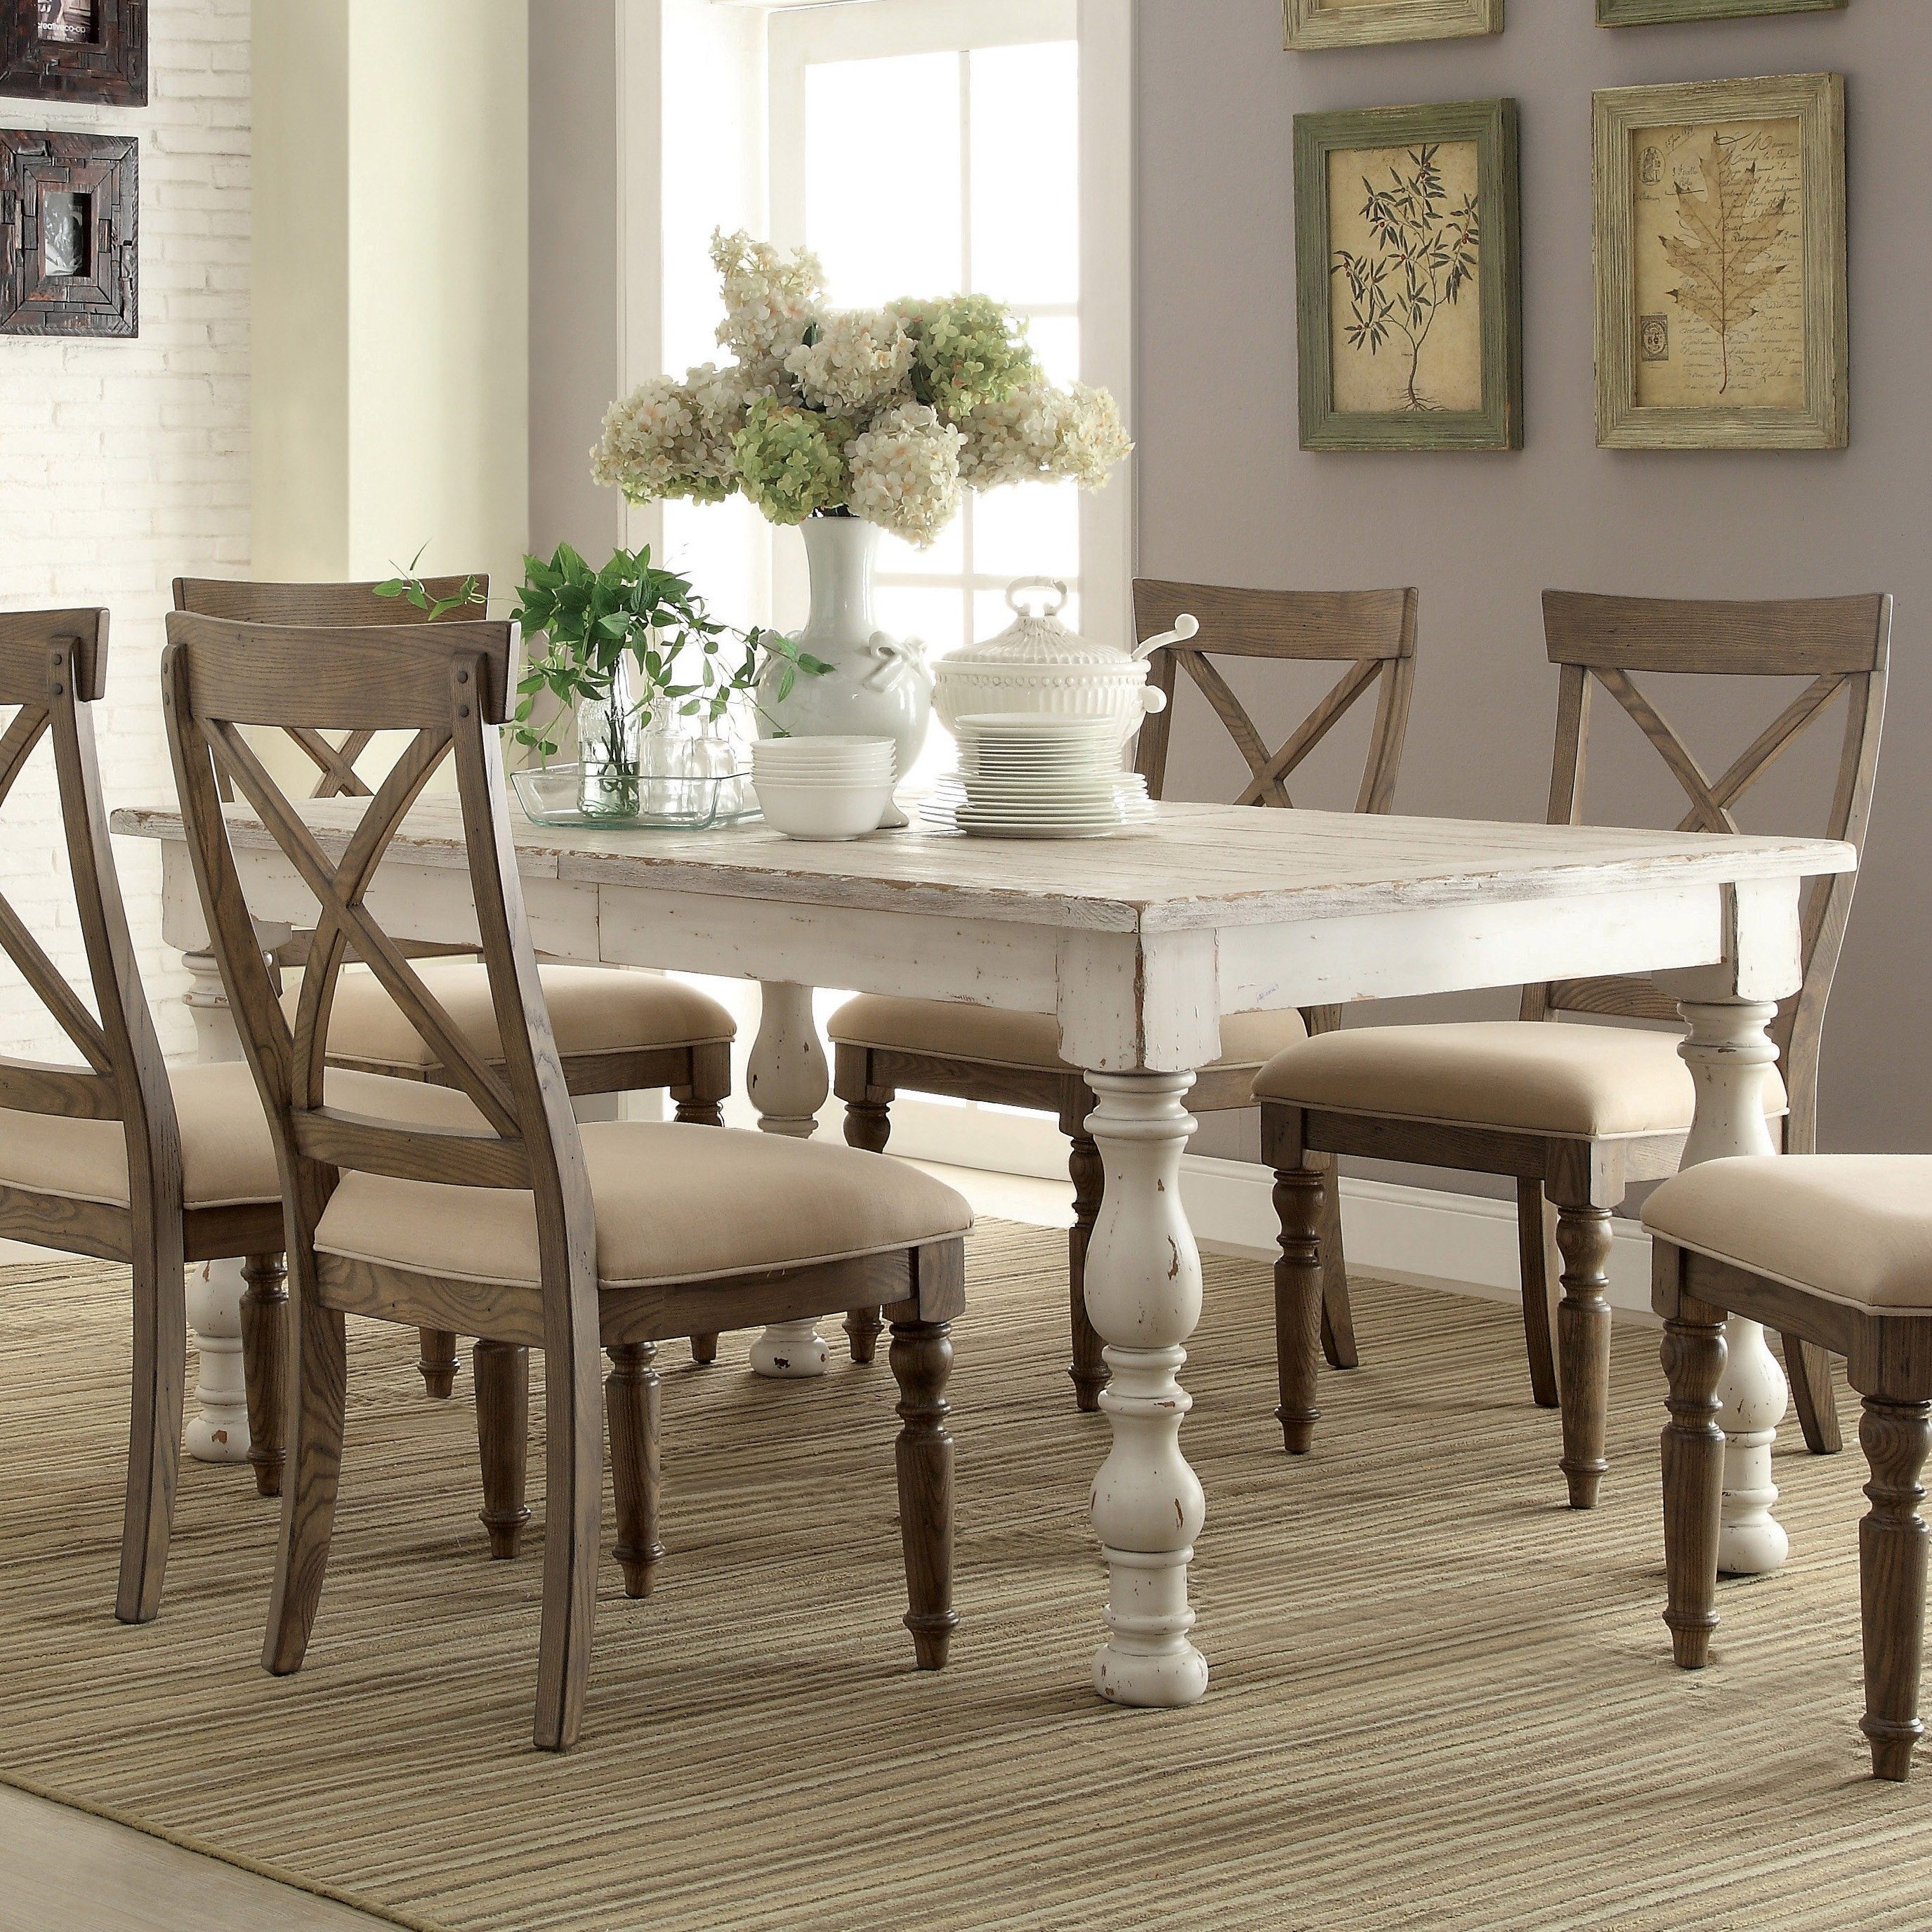 Aberdeen wood rectangular dining table and chairs in for White kitchen table set